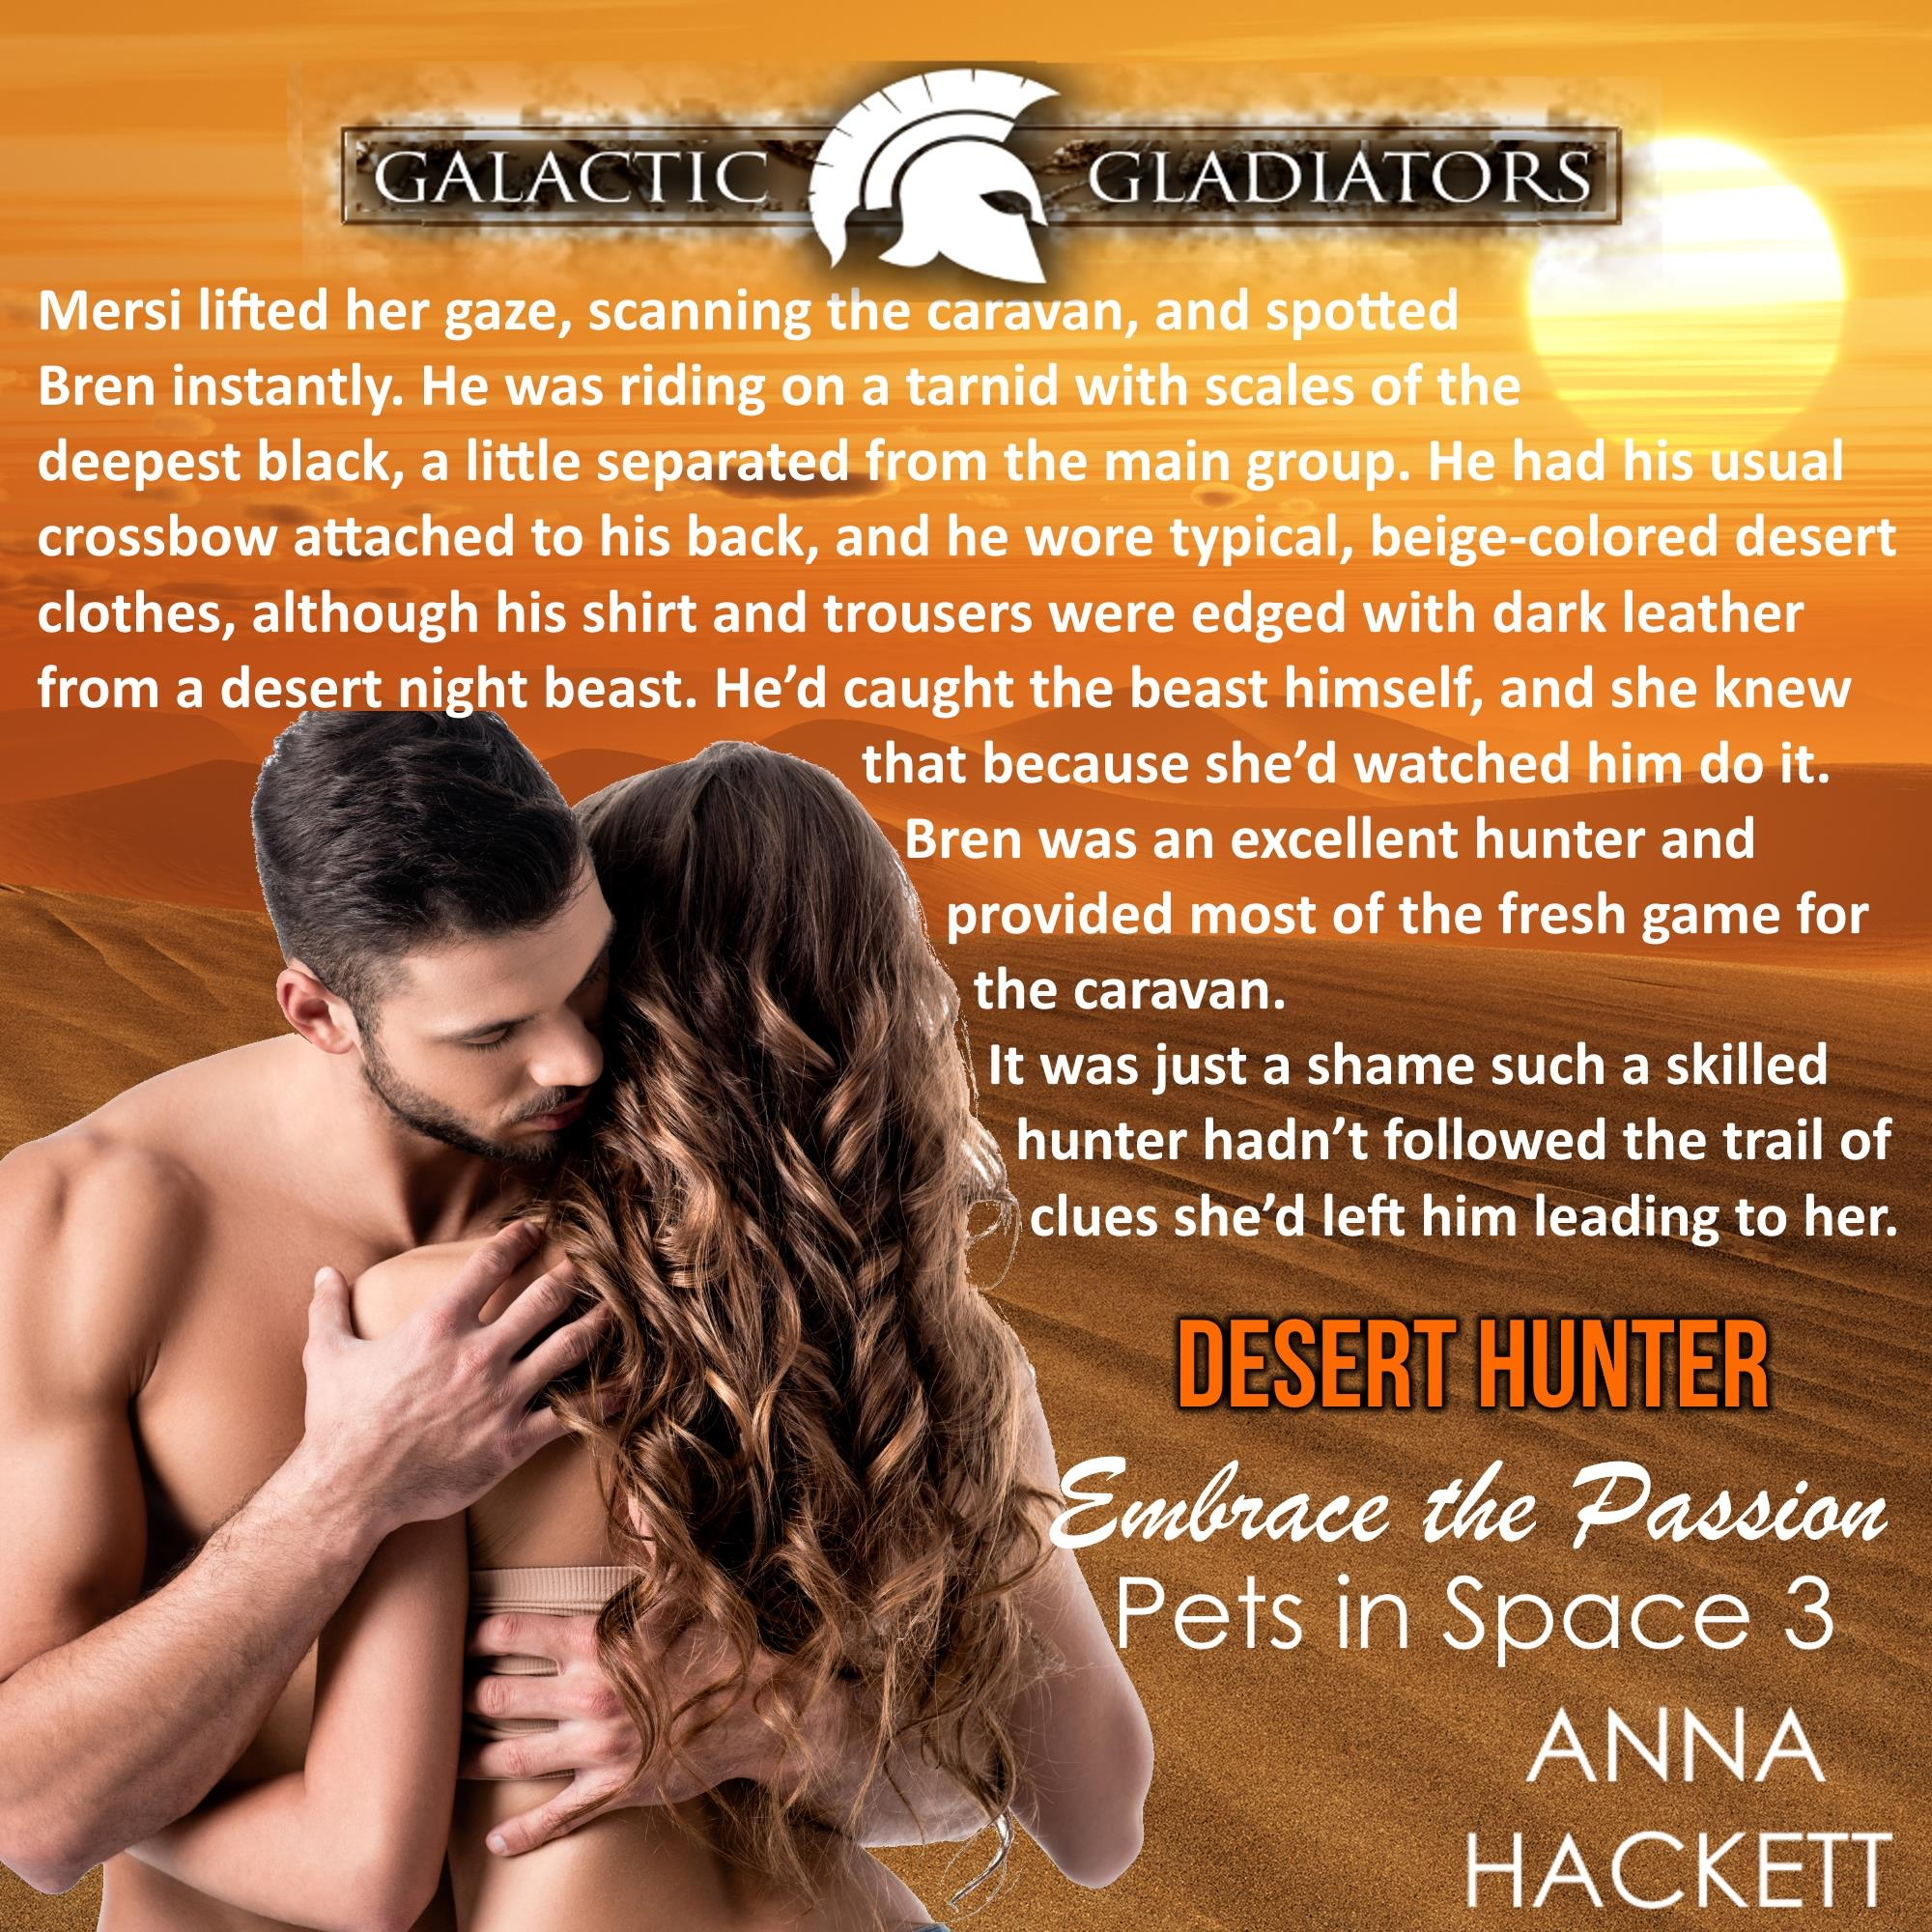 Desert Hunter by Anna Hackett teaser 1